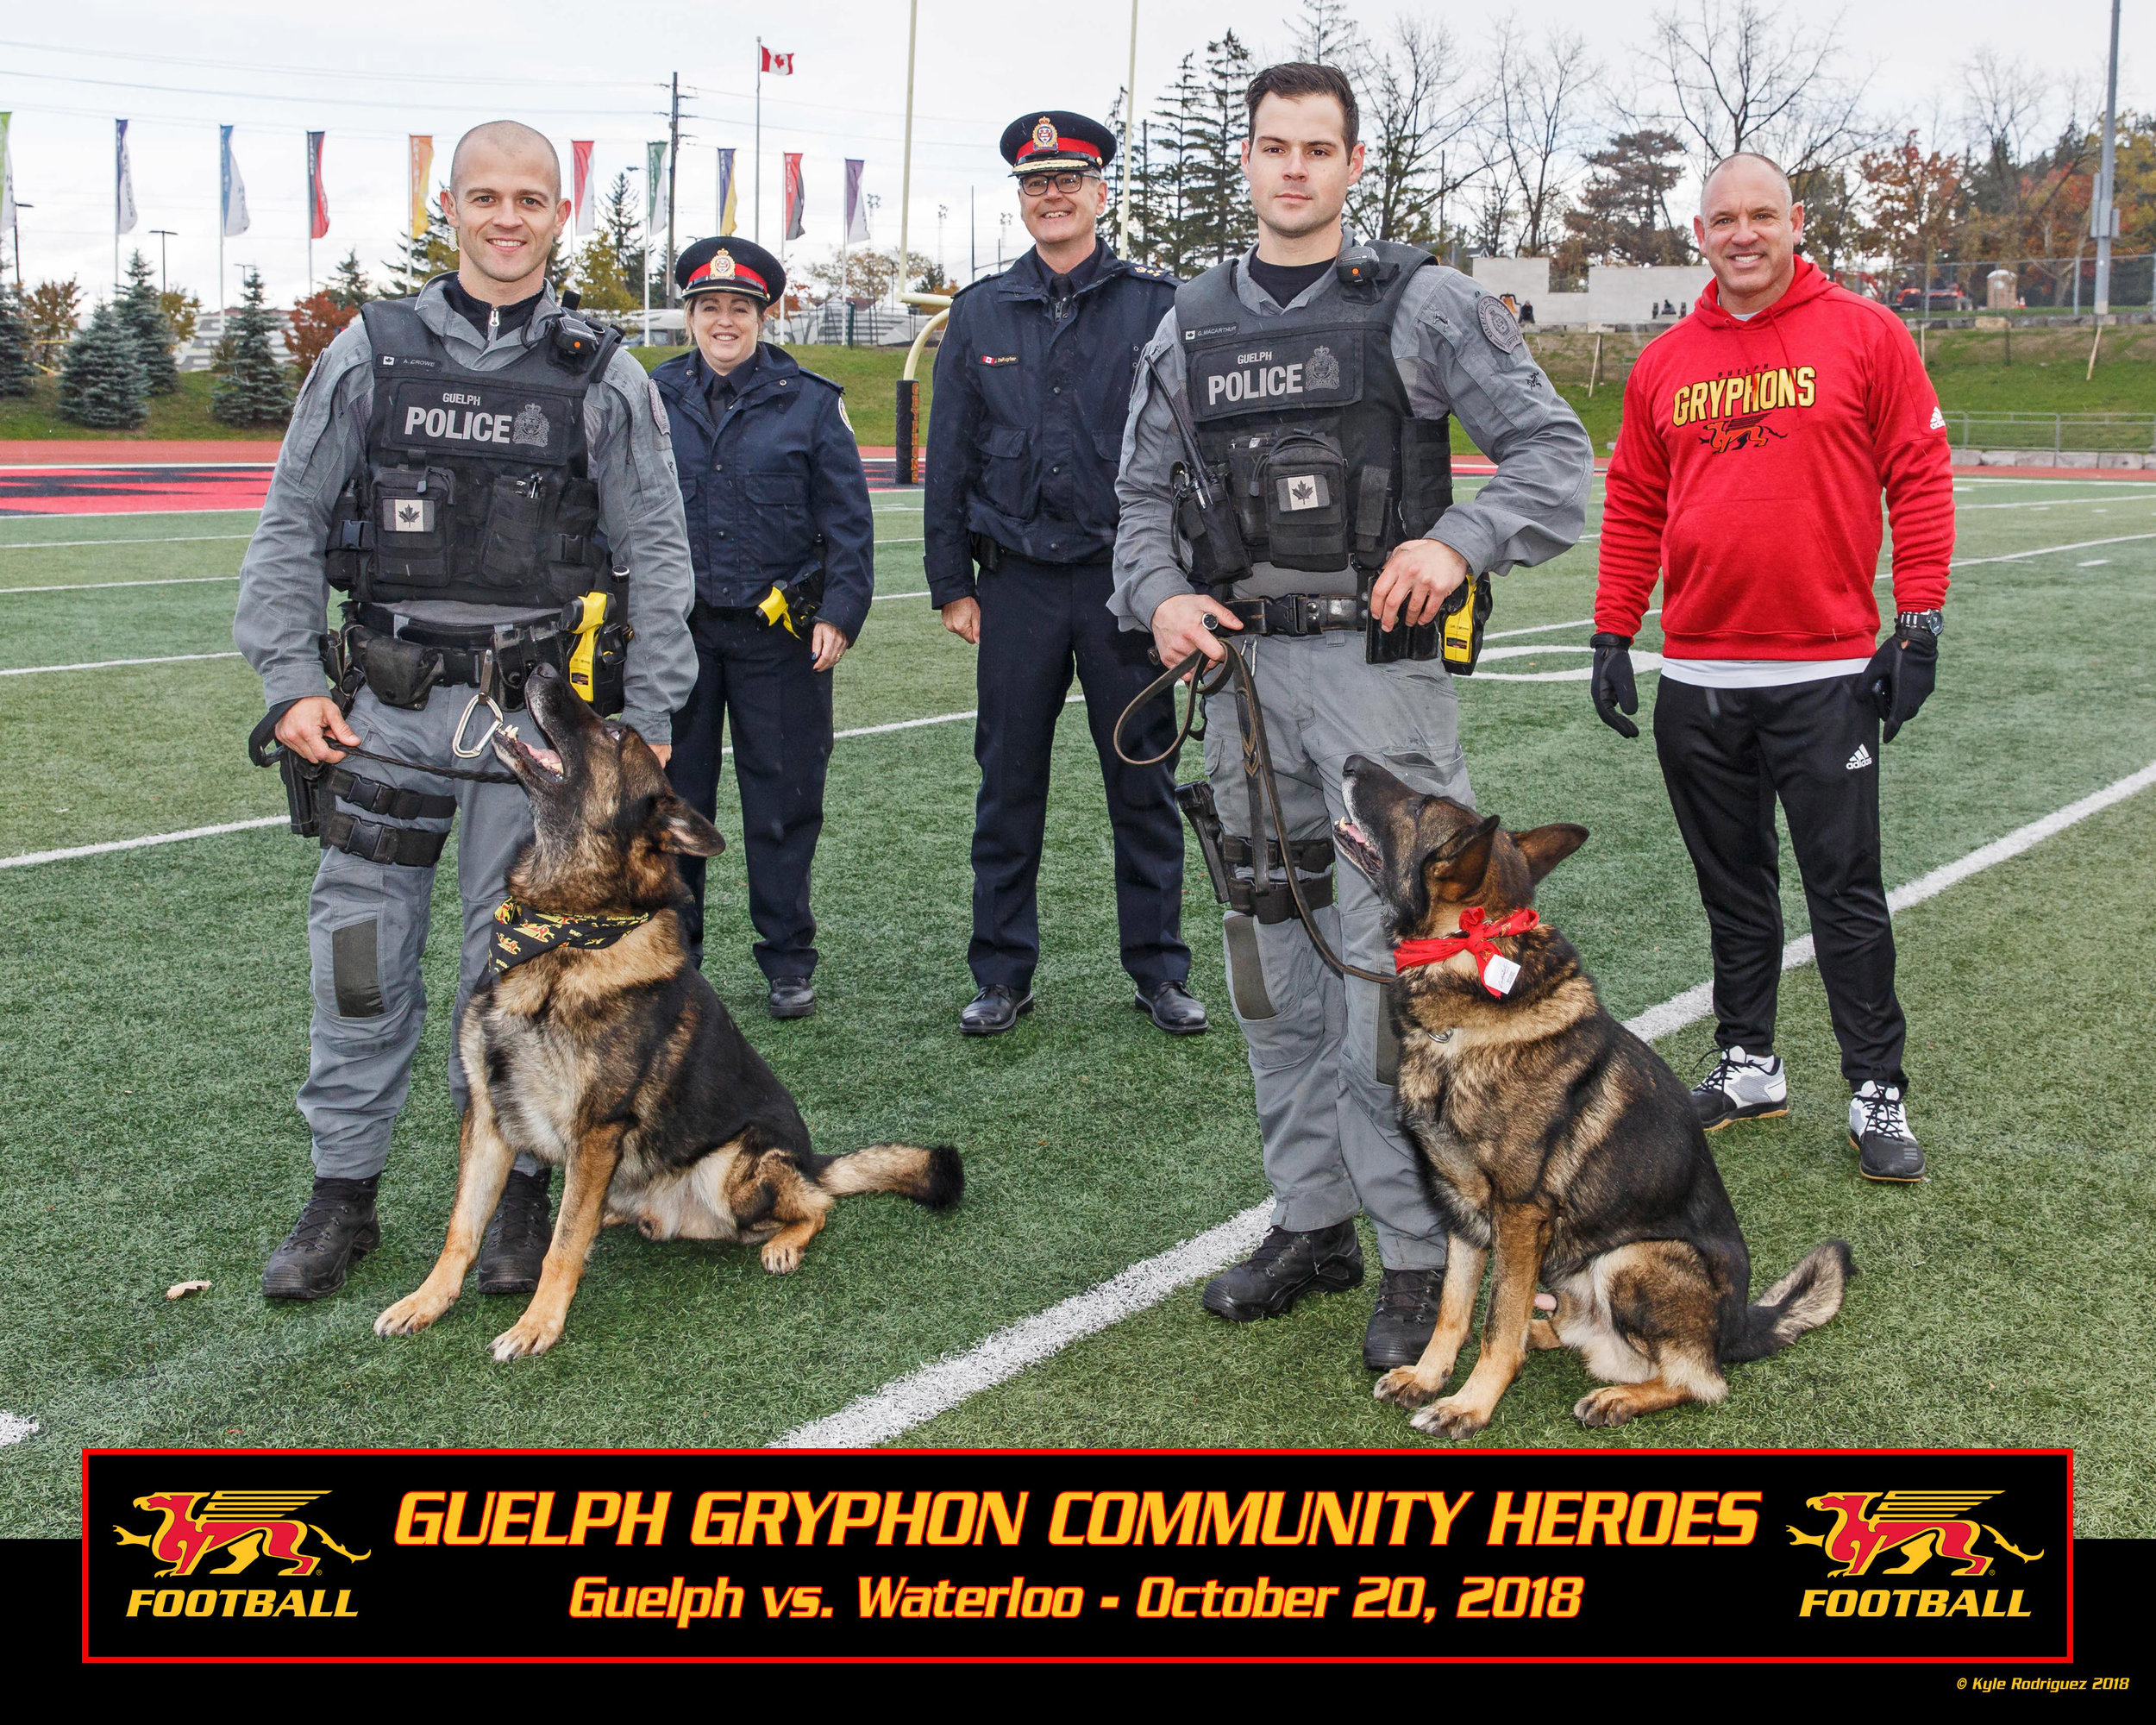 Left to right front: Cst. Andrew Crowe and Police Service Dog Charger, Cst. Greg McArthur and Police Service Dog General  Left to right rear: Inspector Andrea Ninacs, Chief Jeff DeRuyter, Doug Pflug (Gryphon Football)